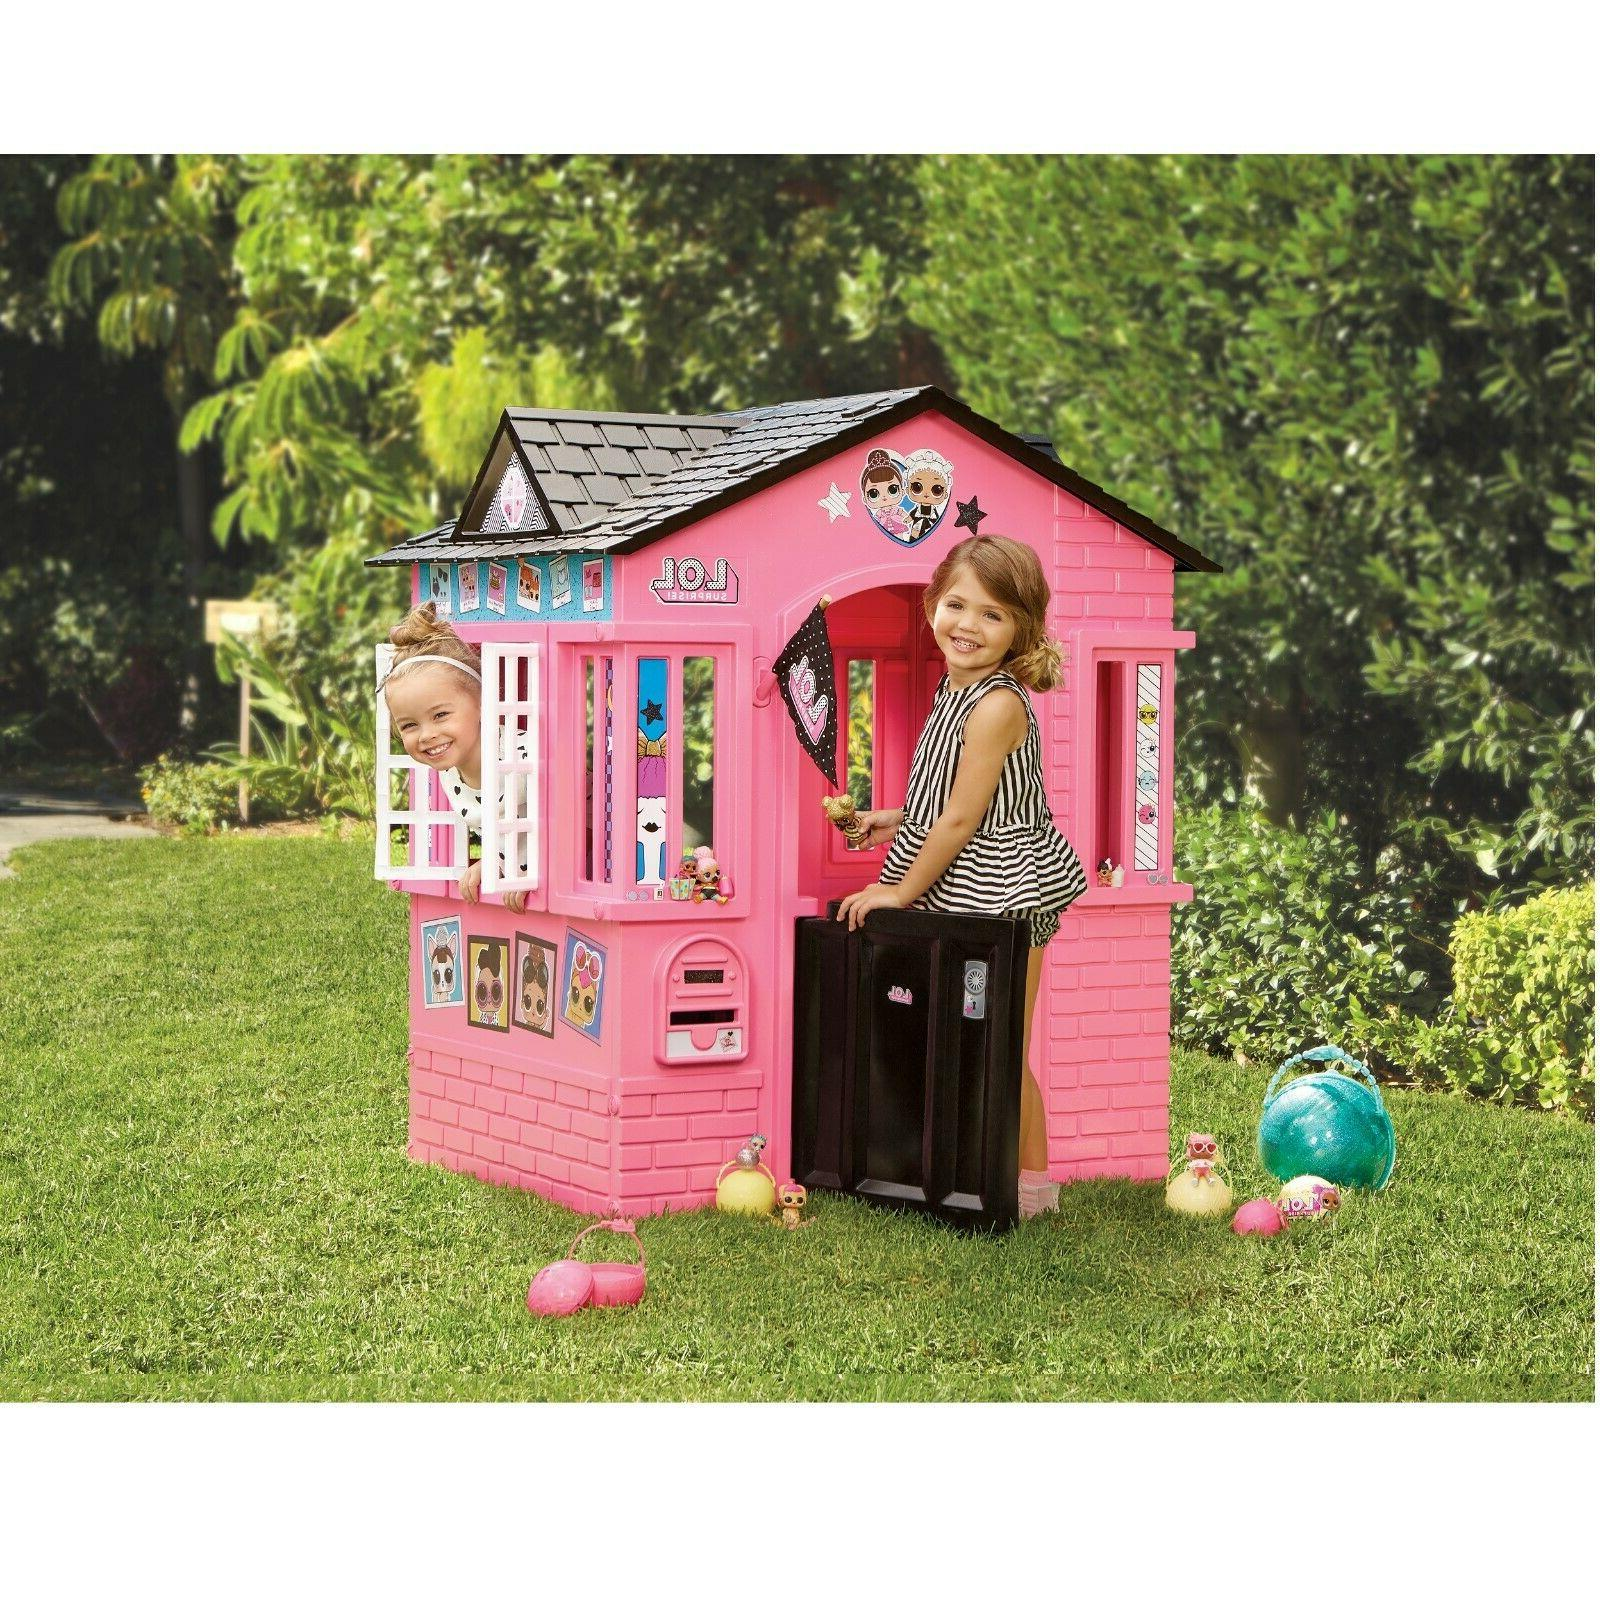 Indoor Cottage Playhouse with Glitter